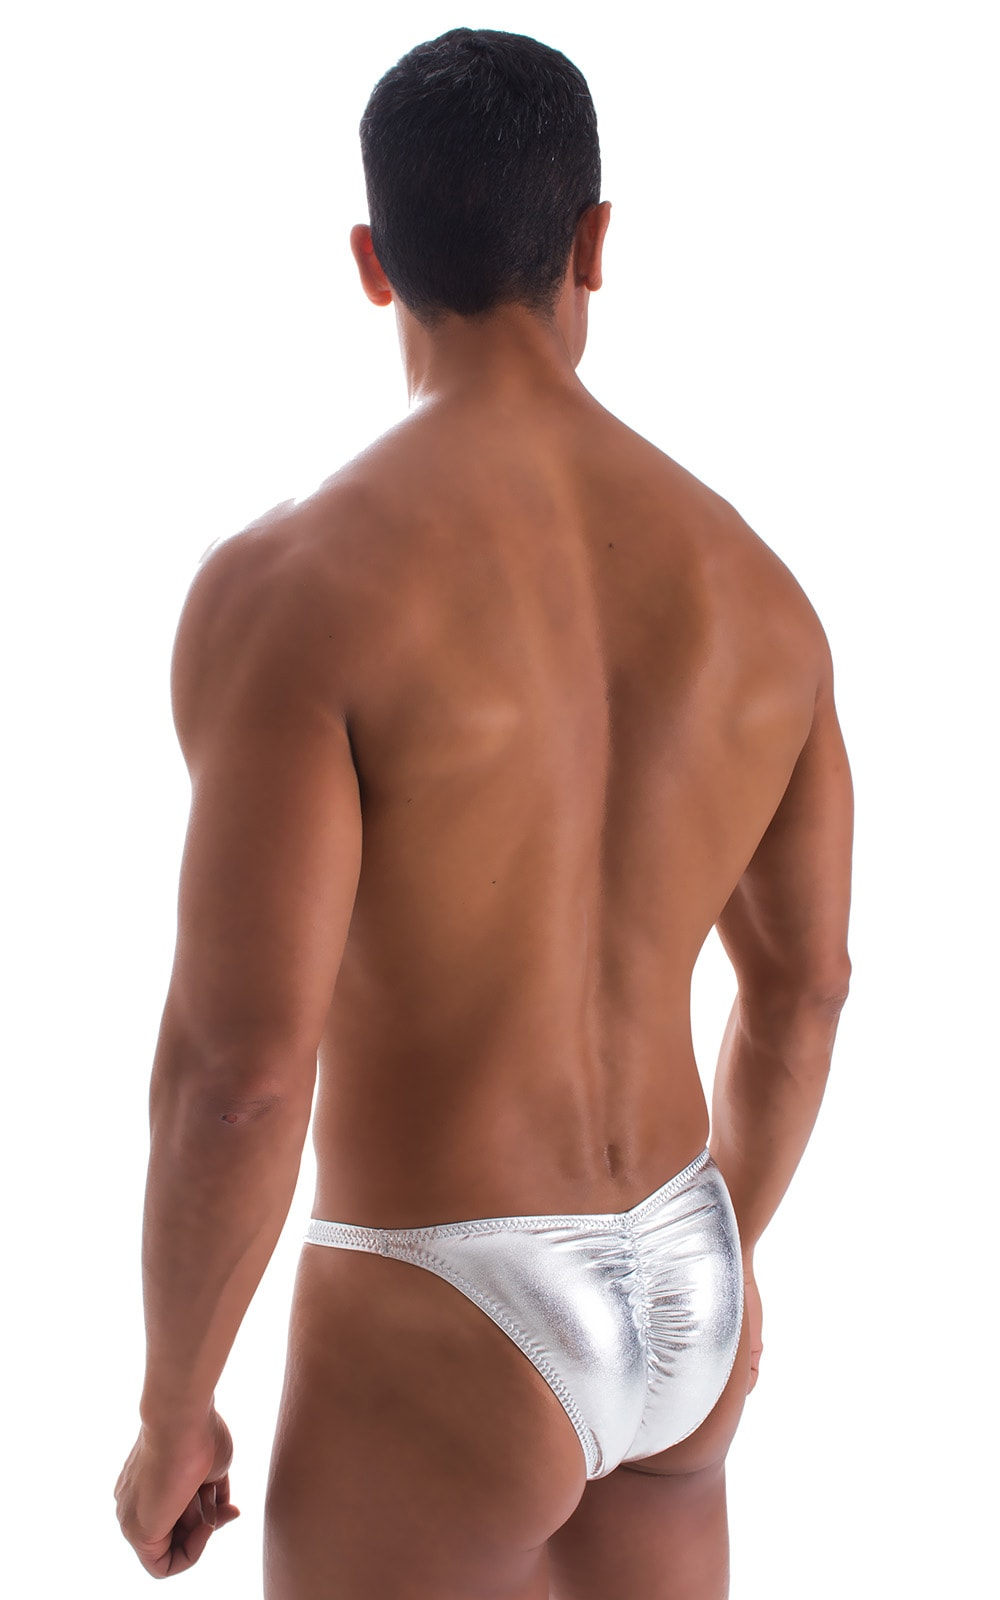 Fitted Pouch - Puckered Back - Bikini in Liquid Silver 2